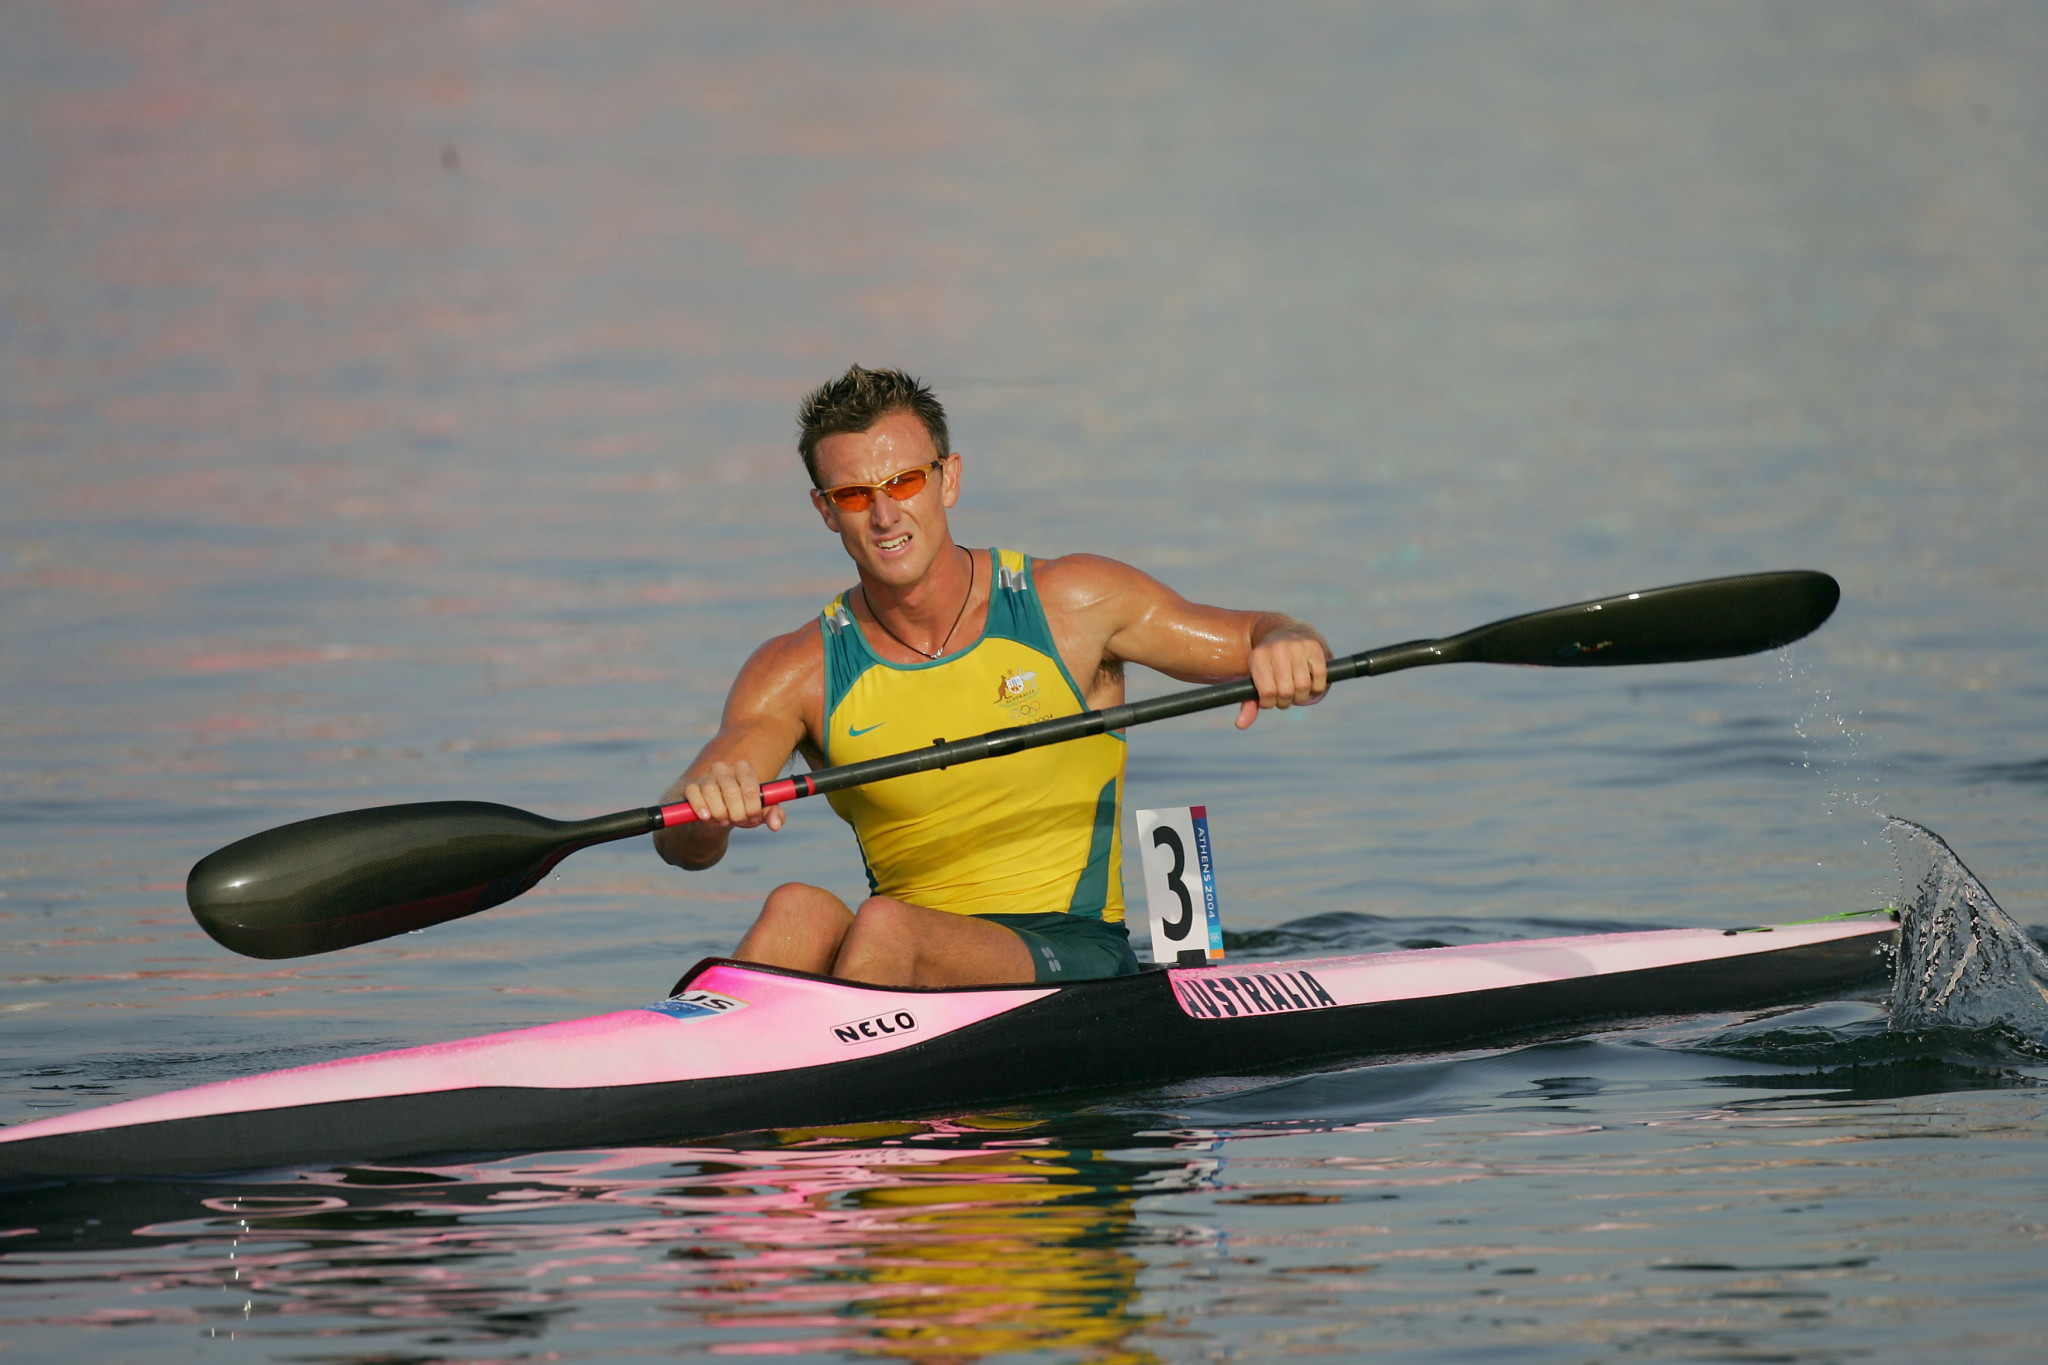 Olympic medallist Baggaley found guilty of attempting to smuggle cocaine into Australia